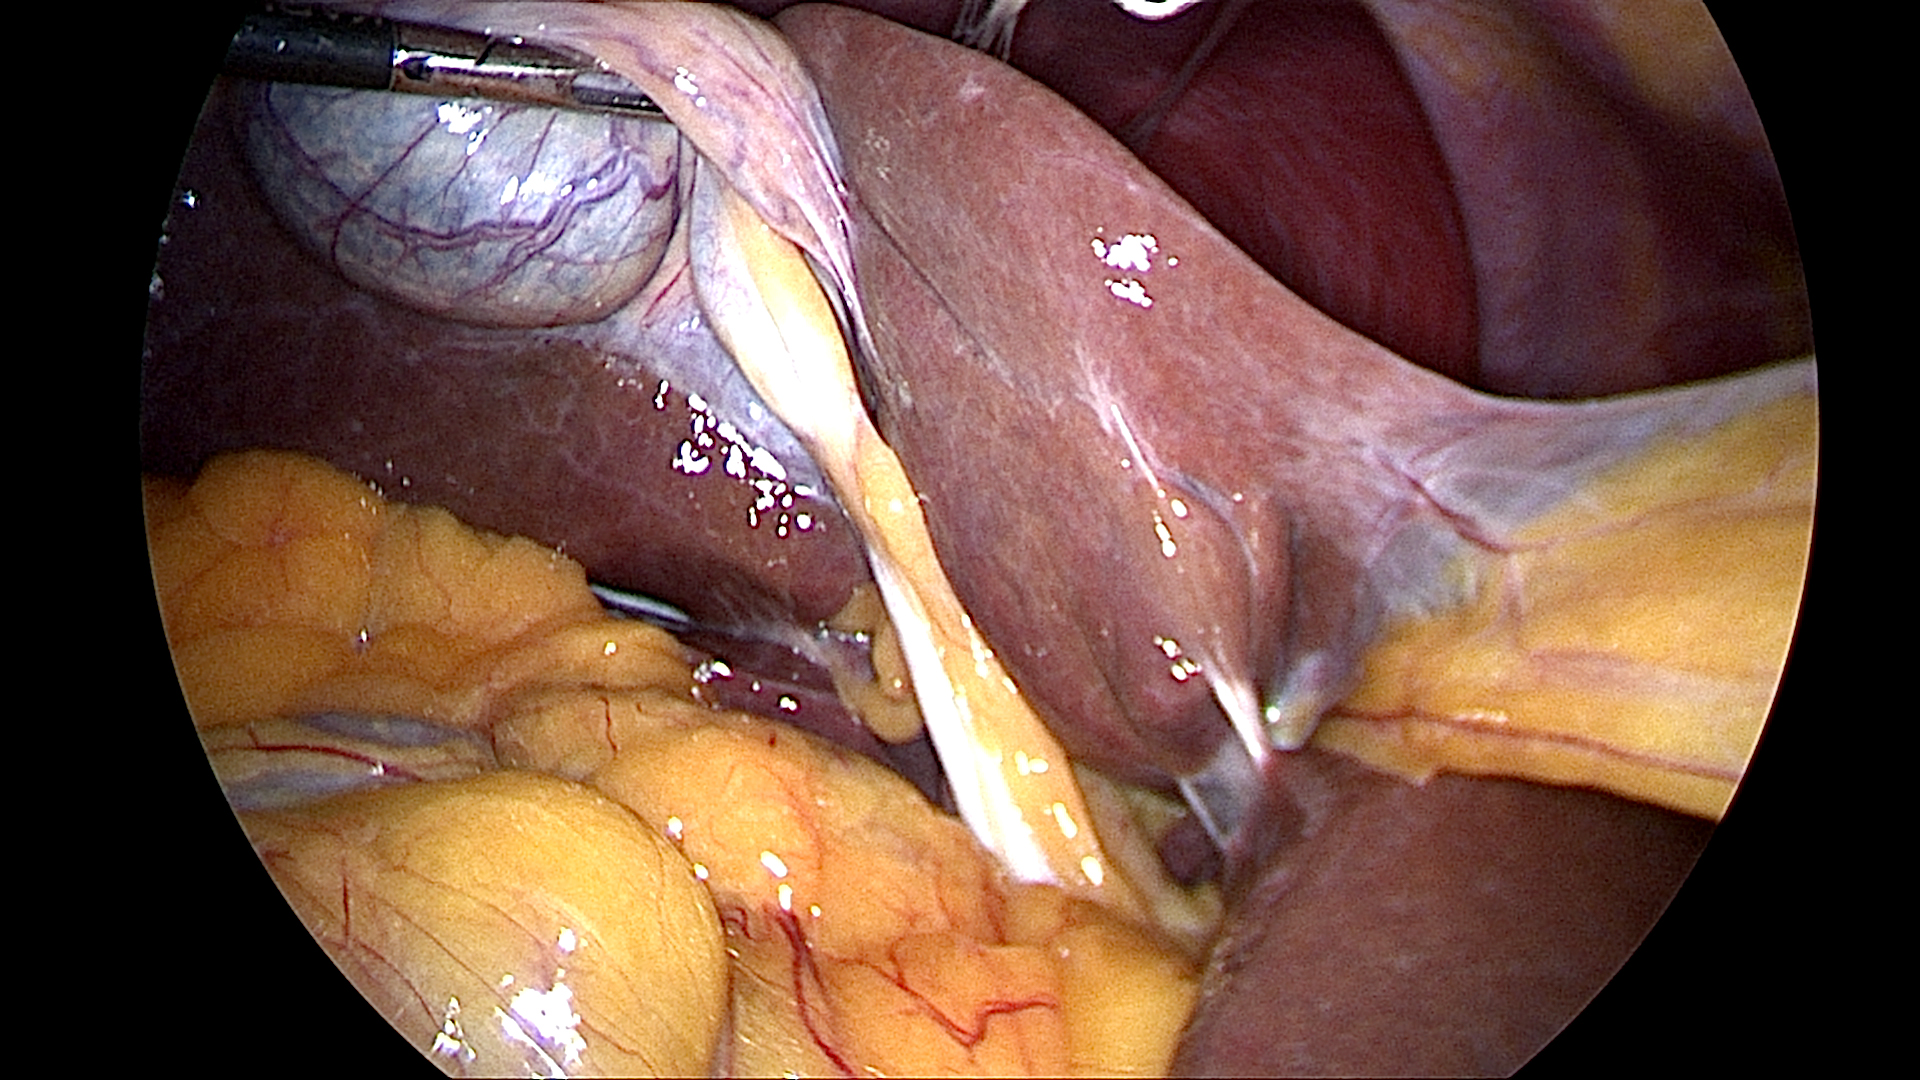 Gallbladder retraction laterally